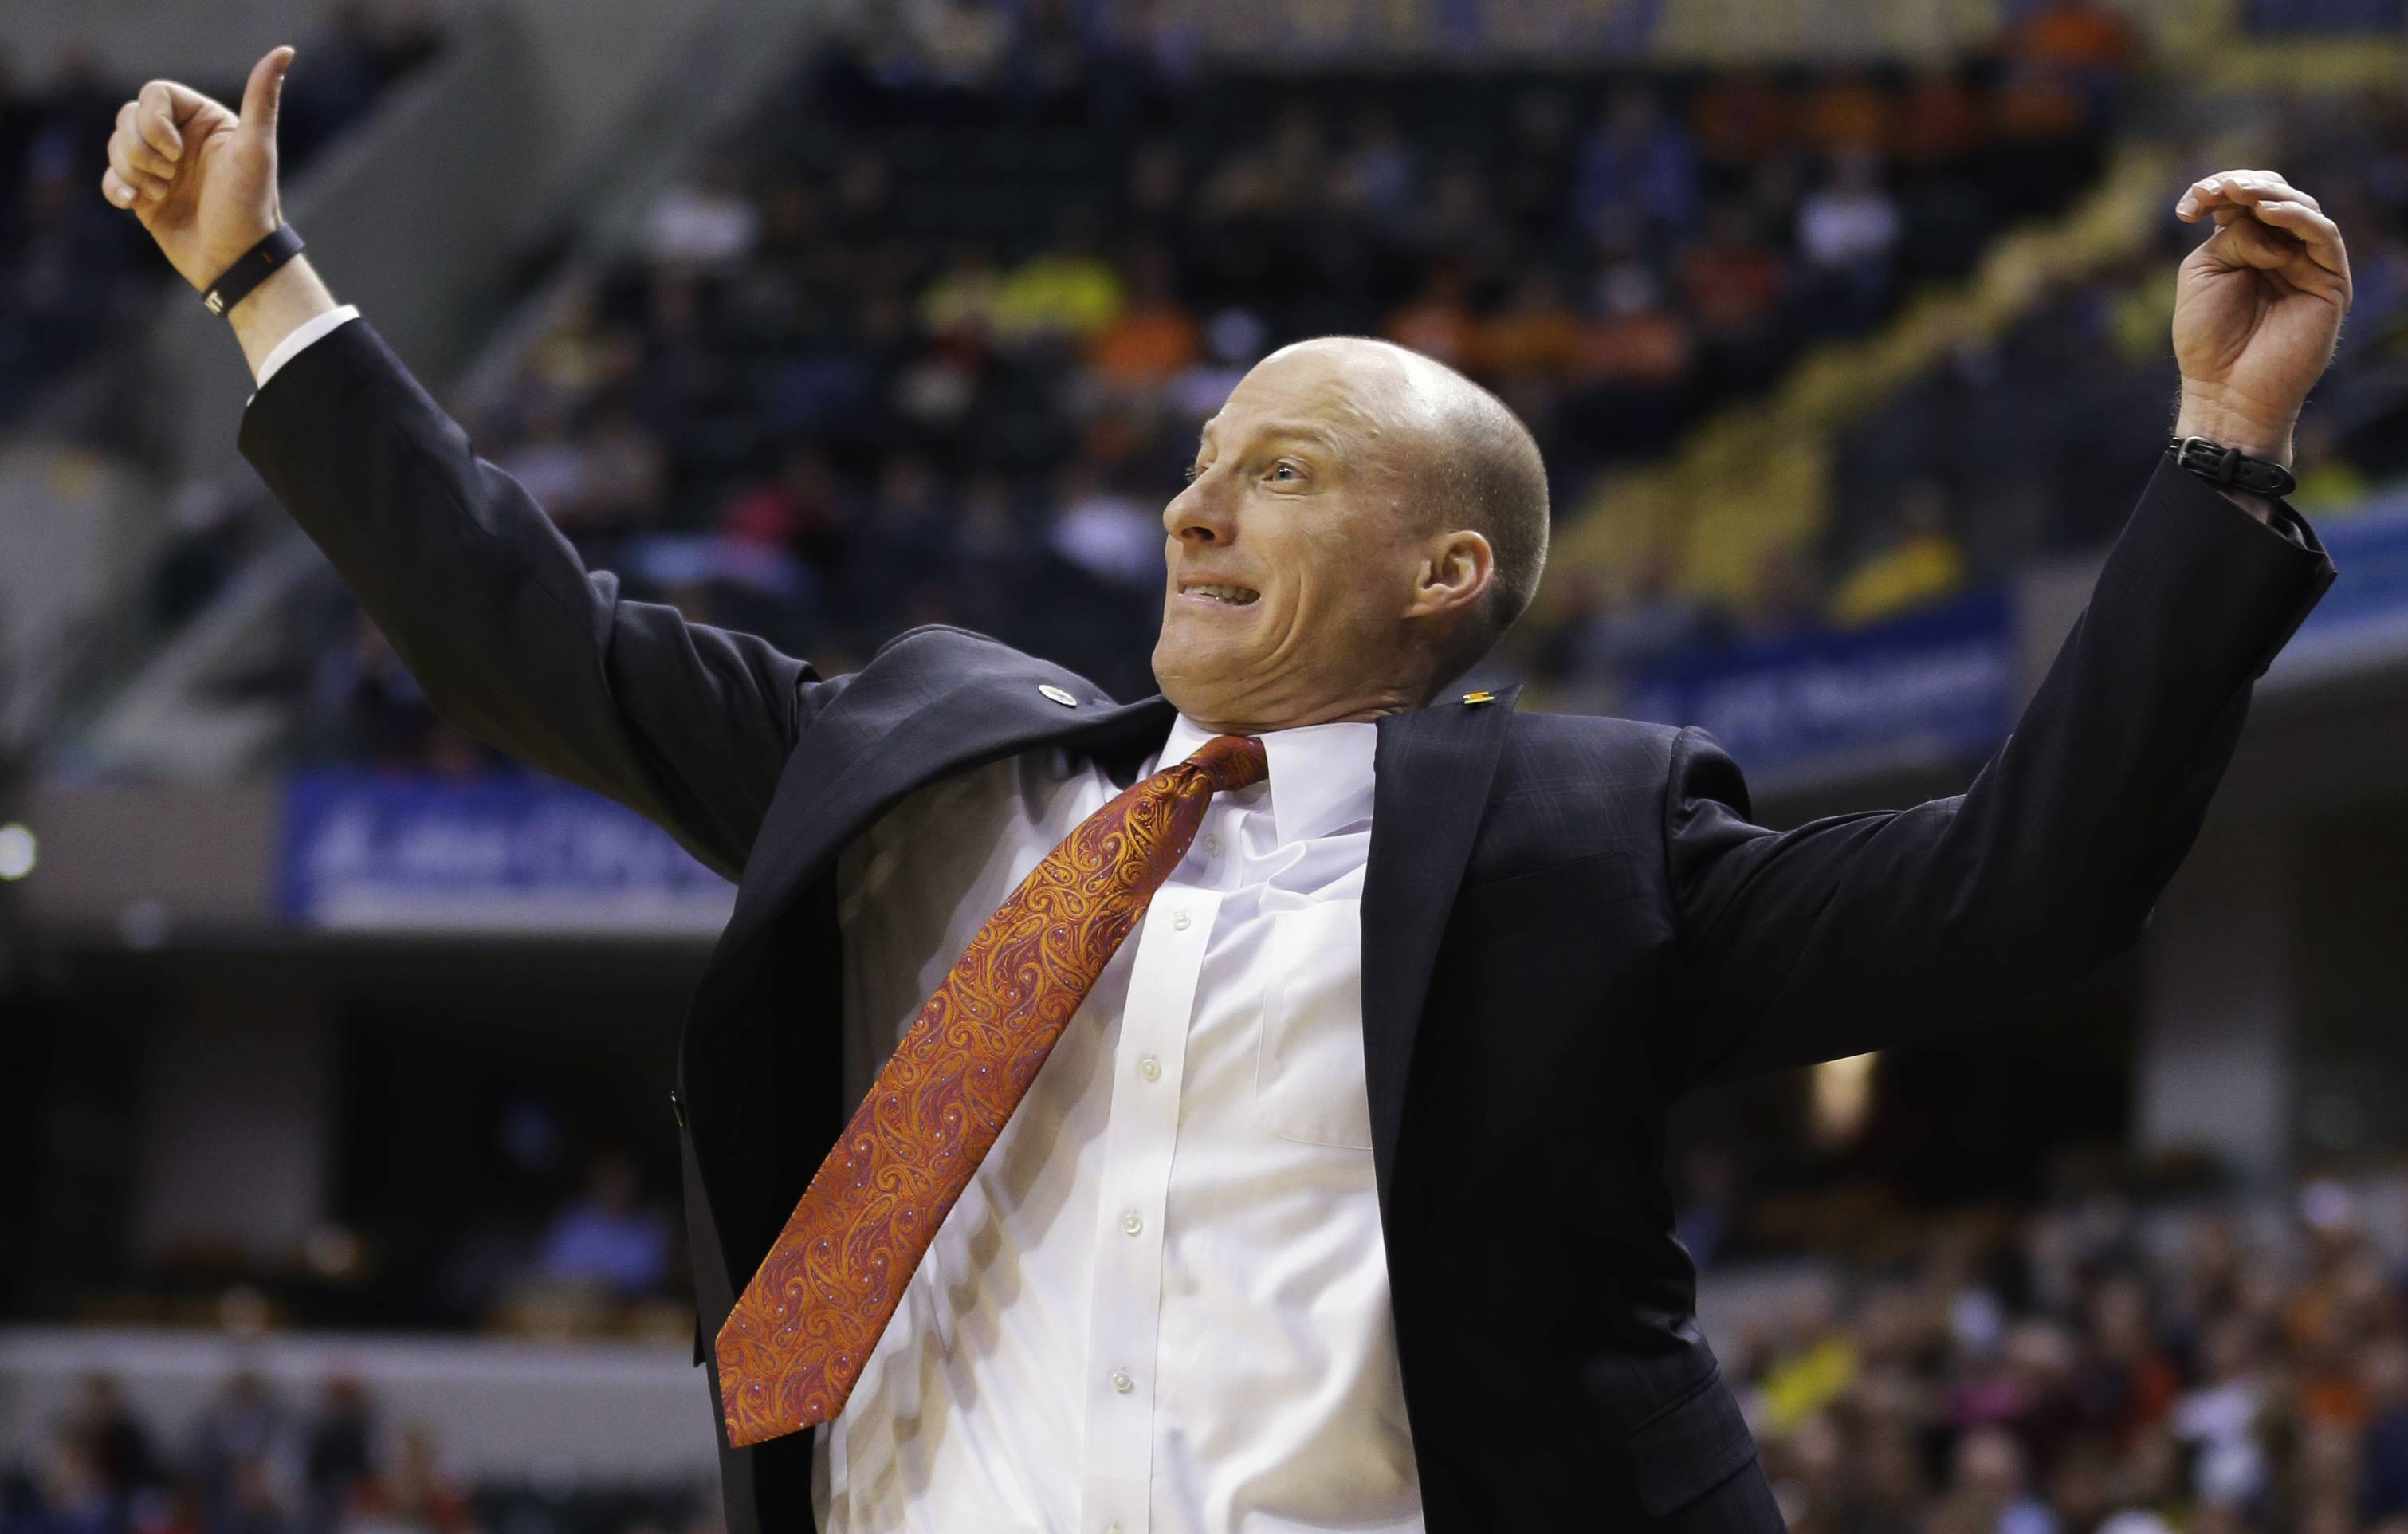 Illinois head coach John Groce reacts to a play against Michigan in the quarterfinals of the Big Ten Conference tournament last month in Indianapolis